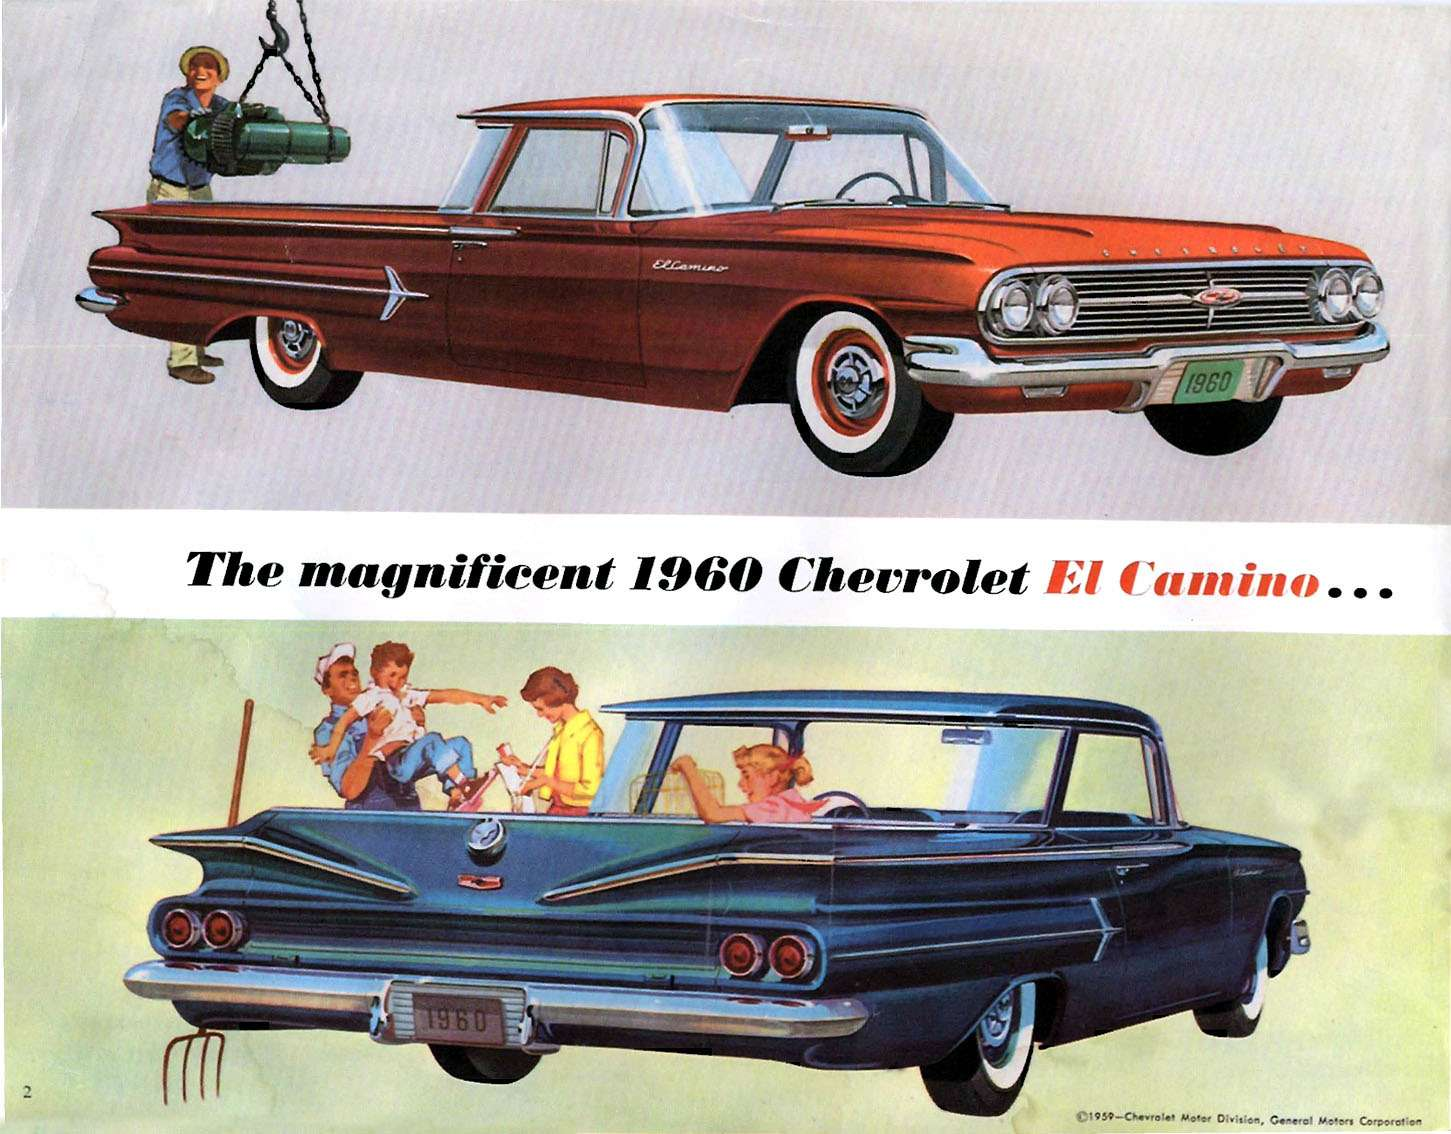 no_copyright_1960 Chevrolet El Camino and Sedan Delivery-02